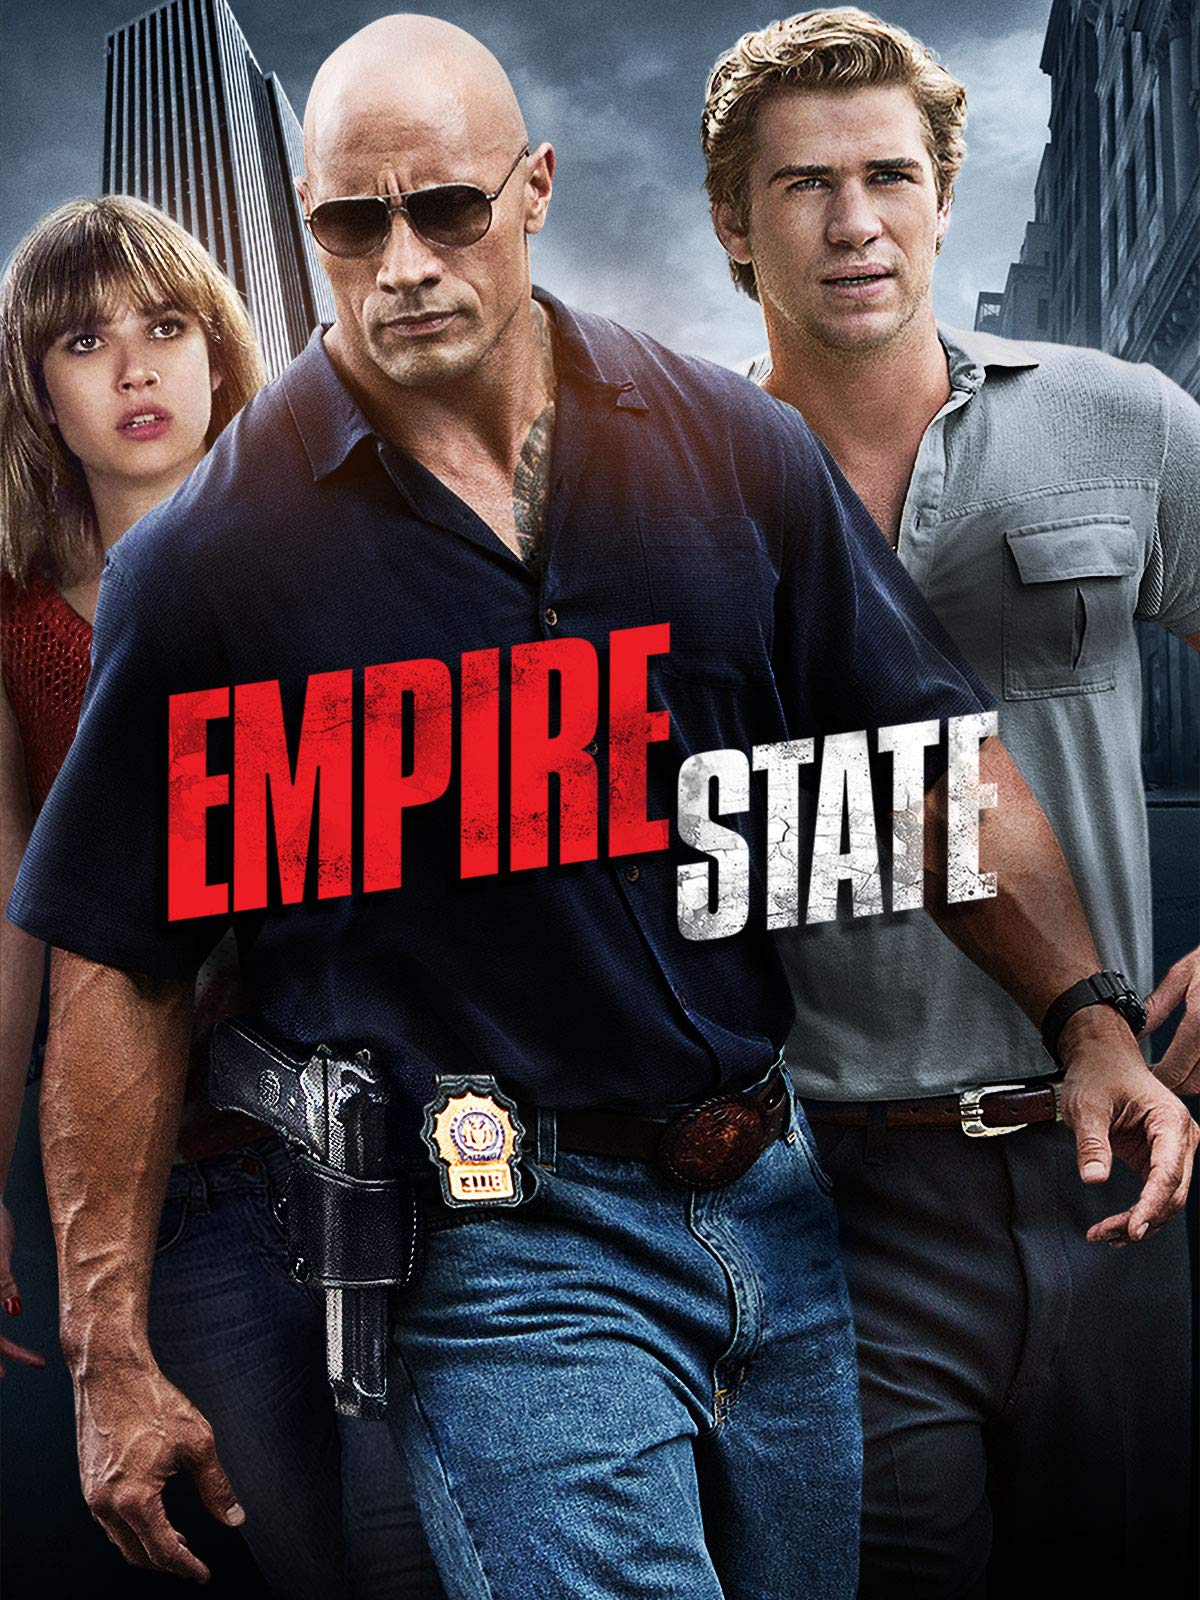 Empire State (2013) on Amazon Prime Video UK